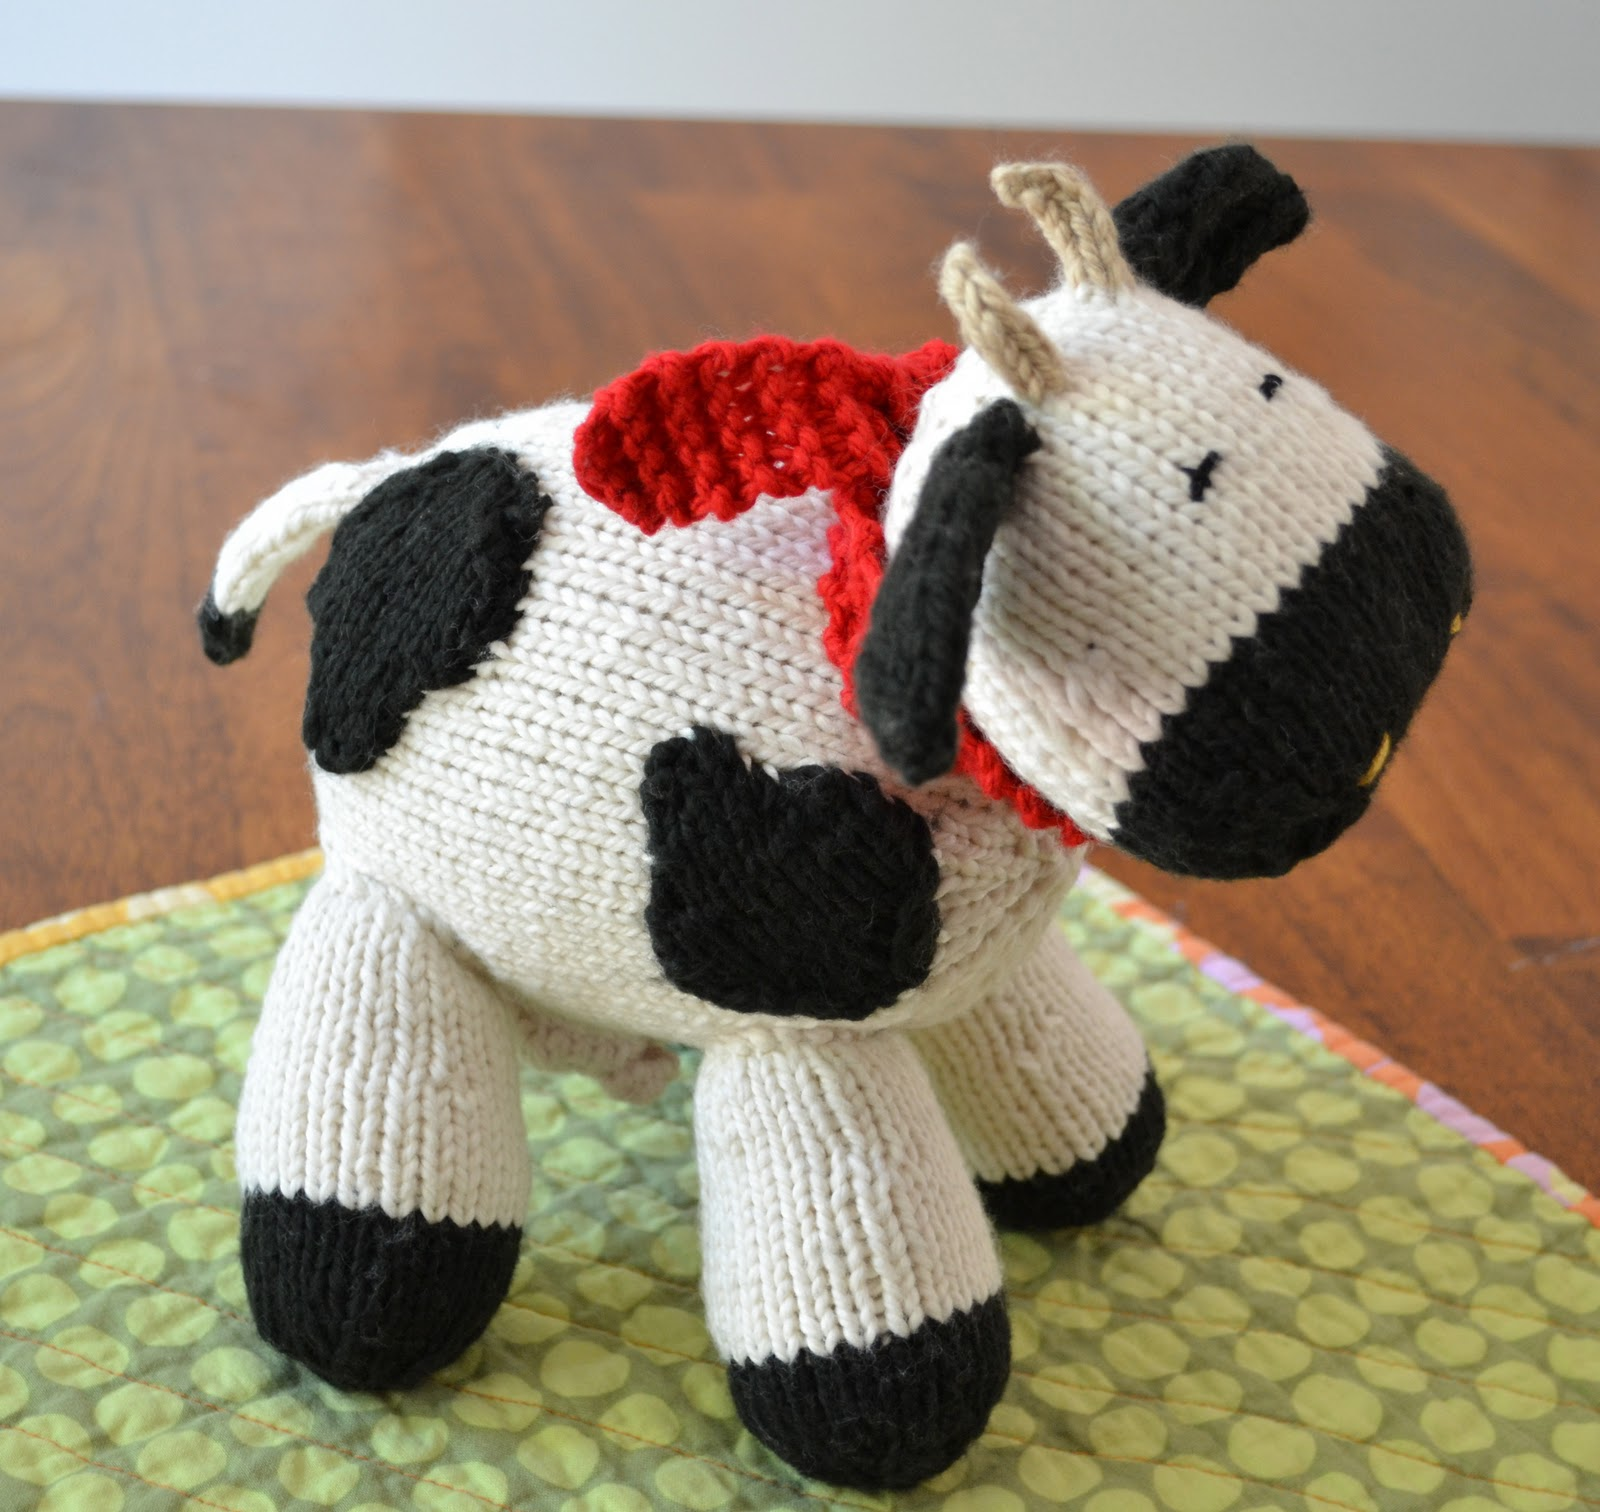 Susan B. Anderson: Milk Cow Pattern is Now Available!